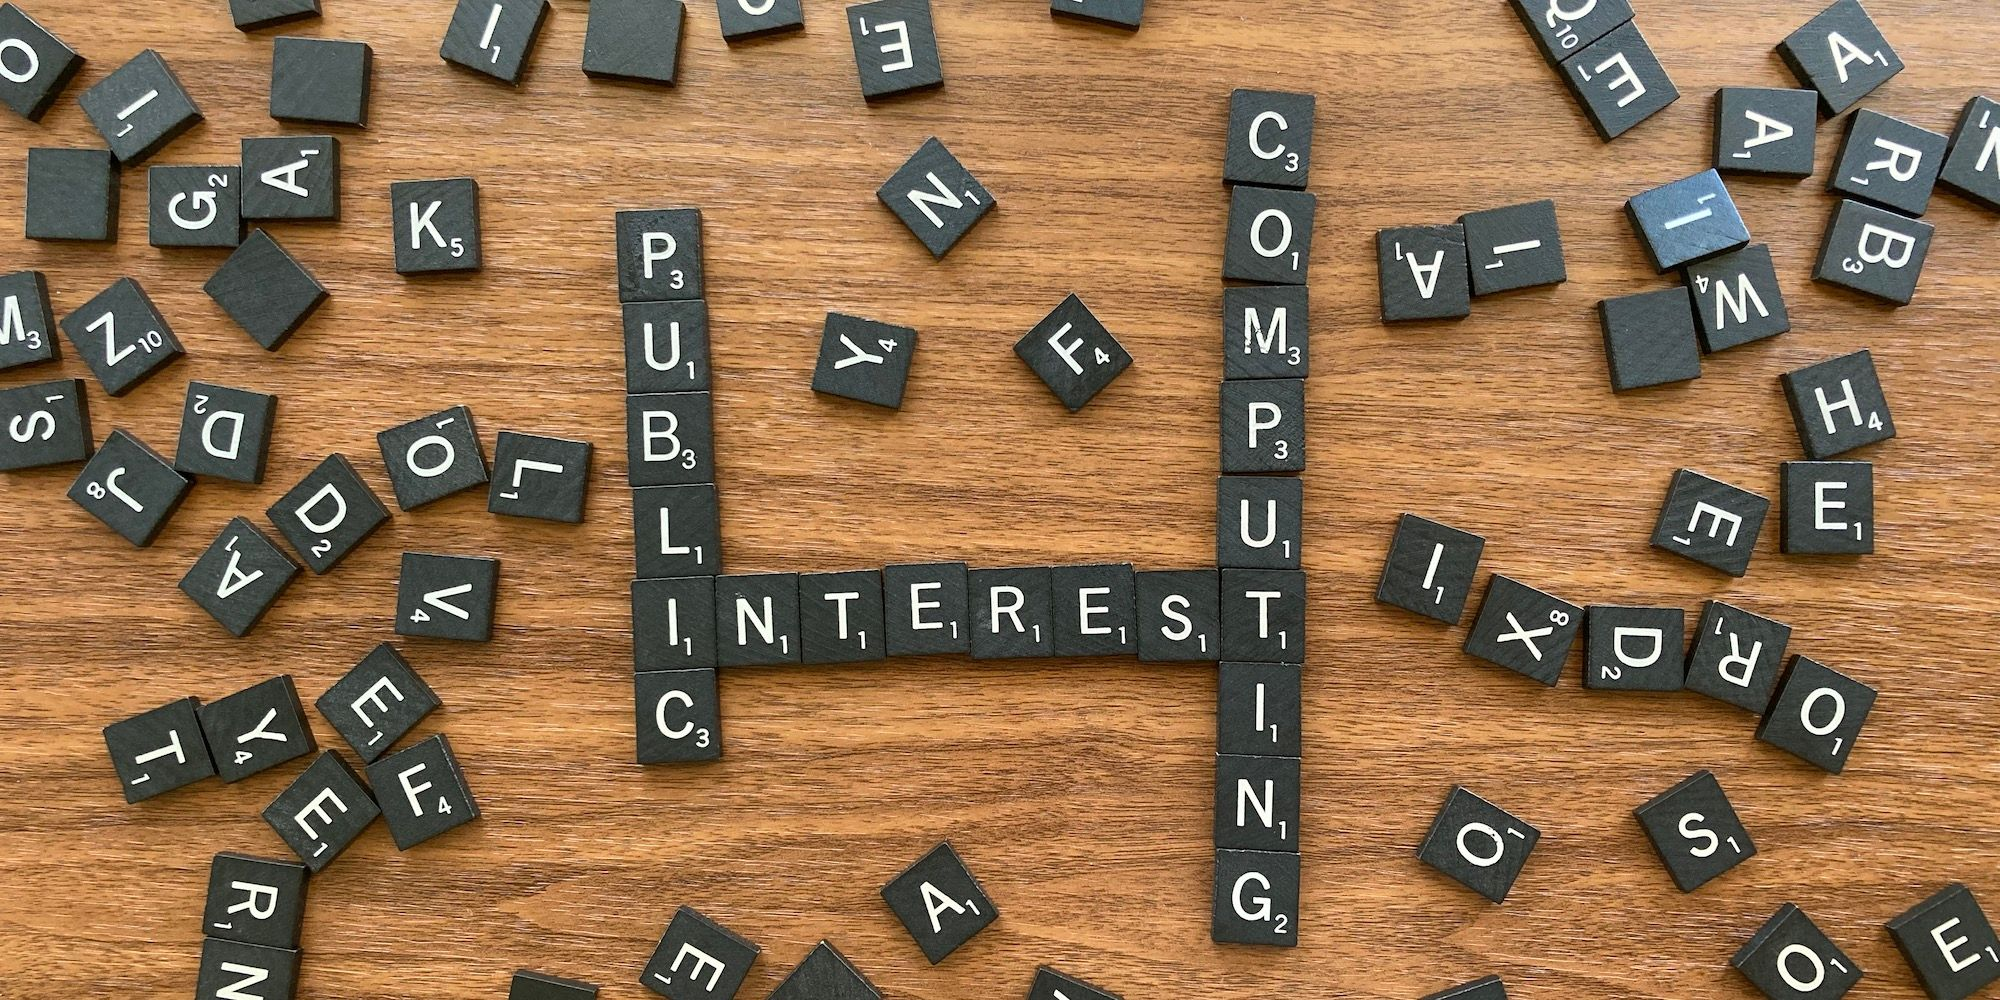 What is Public Interest Computing?